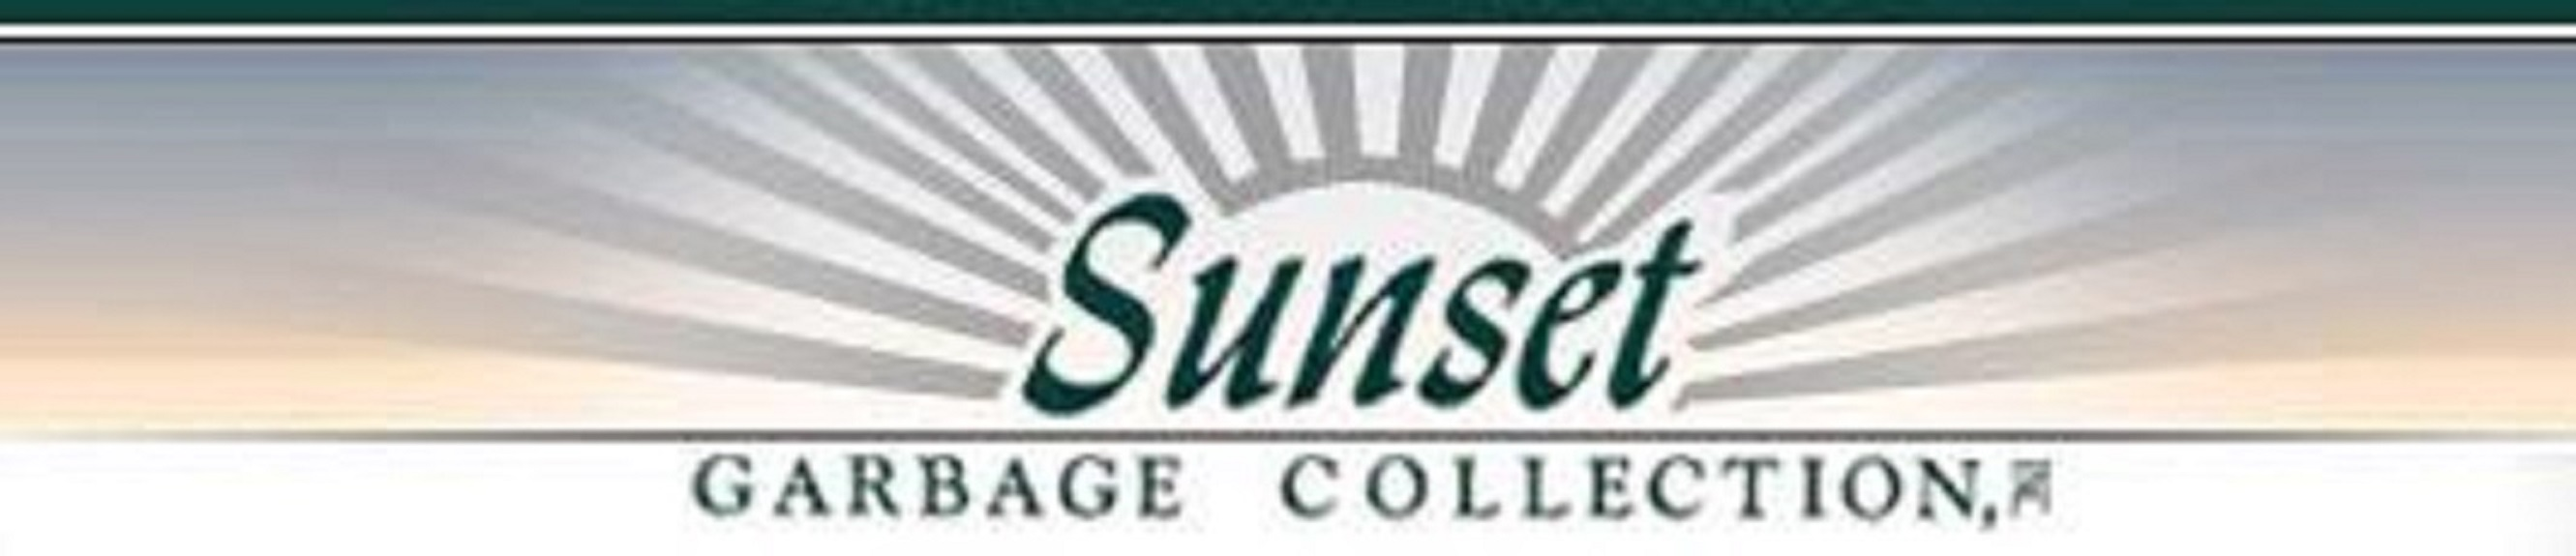 Sunset Garbage Collection Inc.